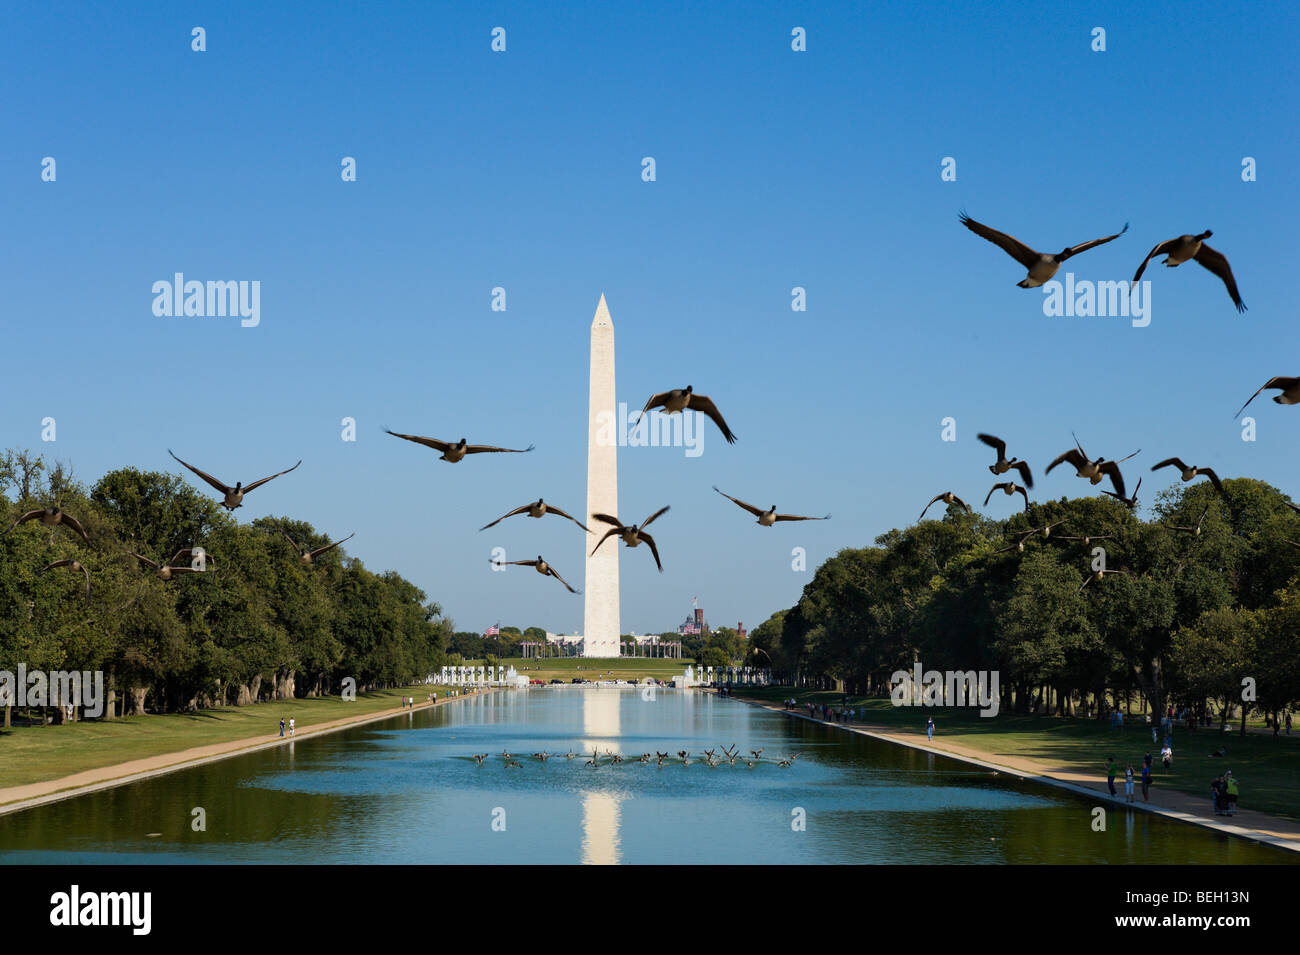 A flock of geese taking off from the Reflecting Pool with the Washington Monument behind, Washington DC, USA - Stock Image